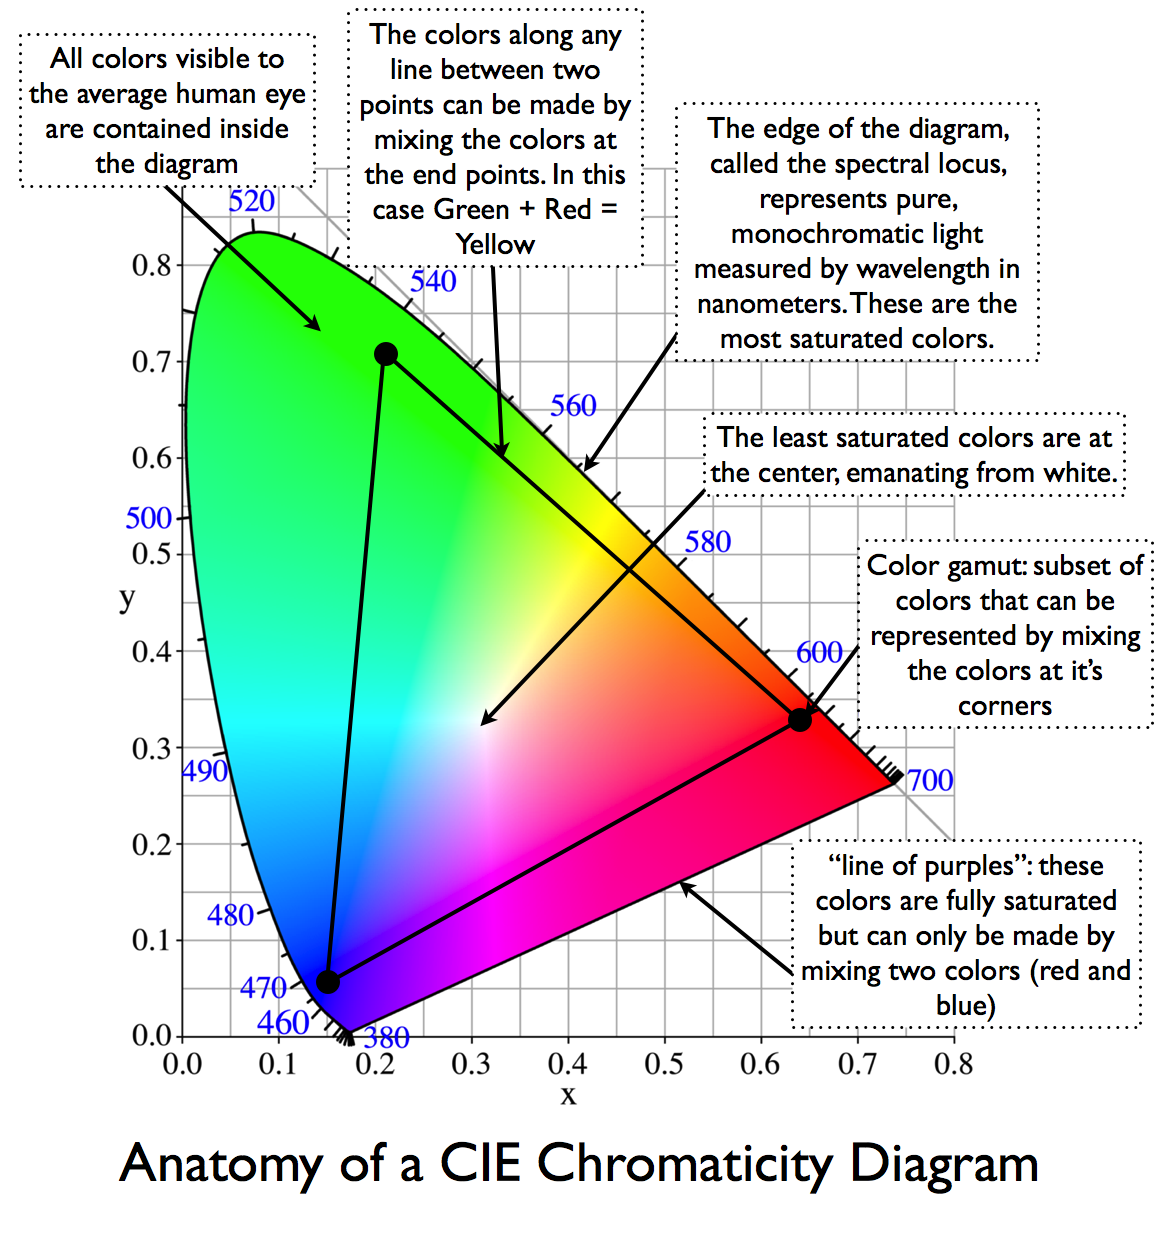 in 1931, the commission internationale de l'éclairage or cie (international  commission on illumination in english) defined the most commonly used color